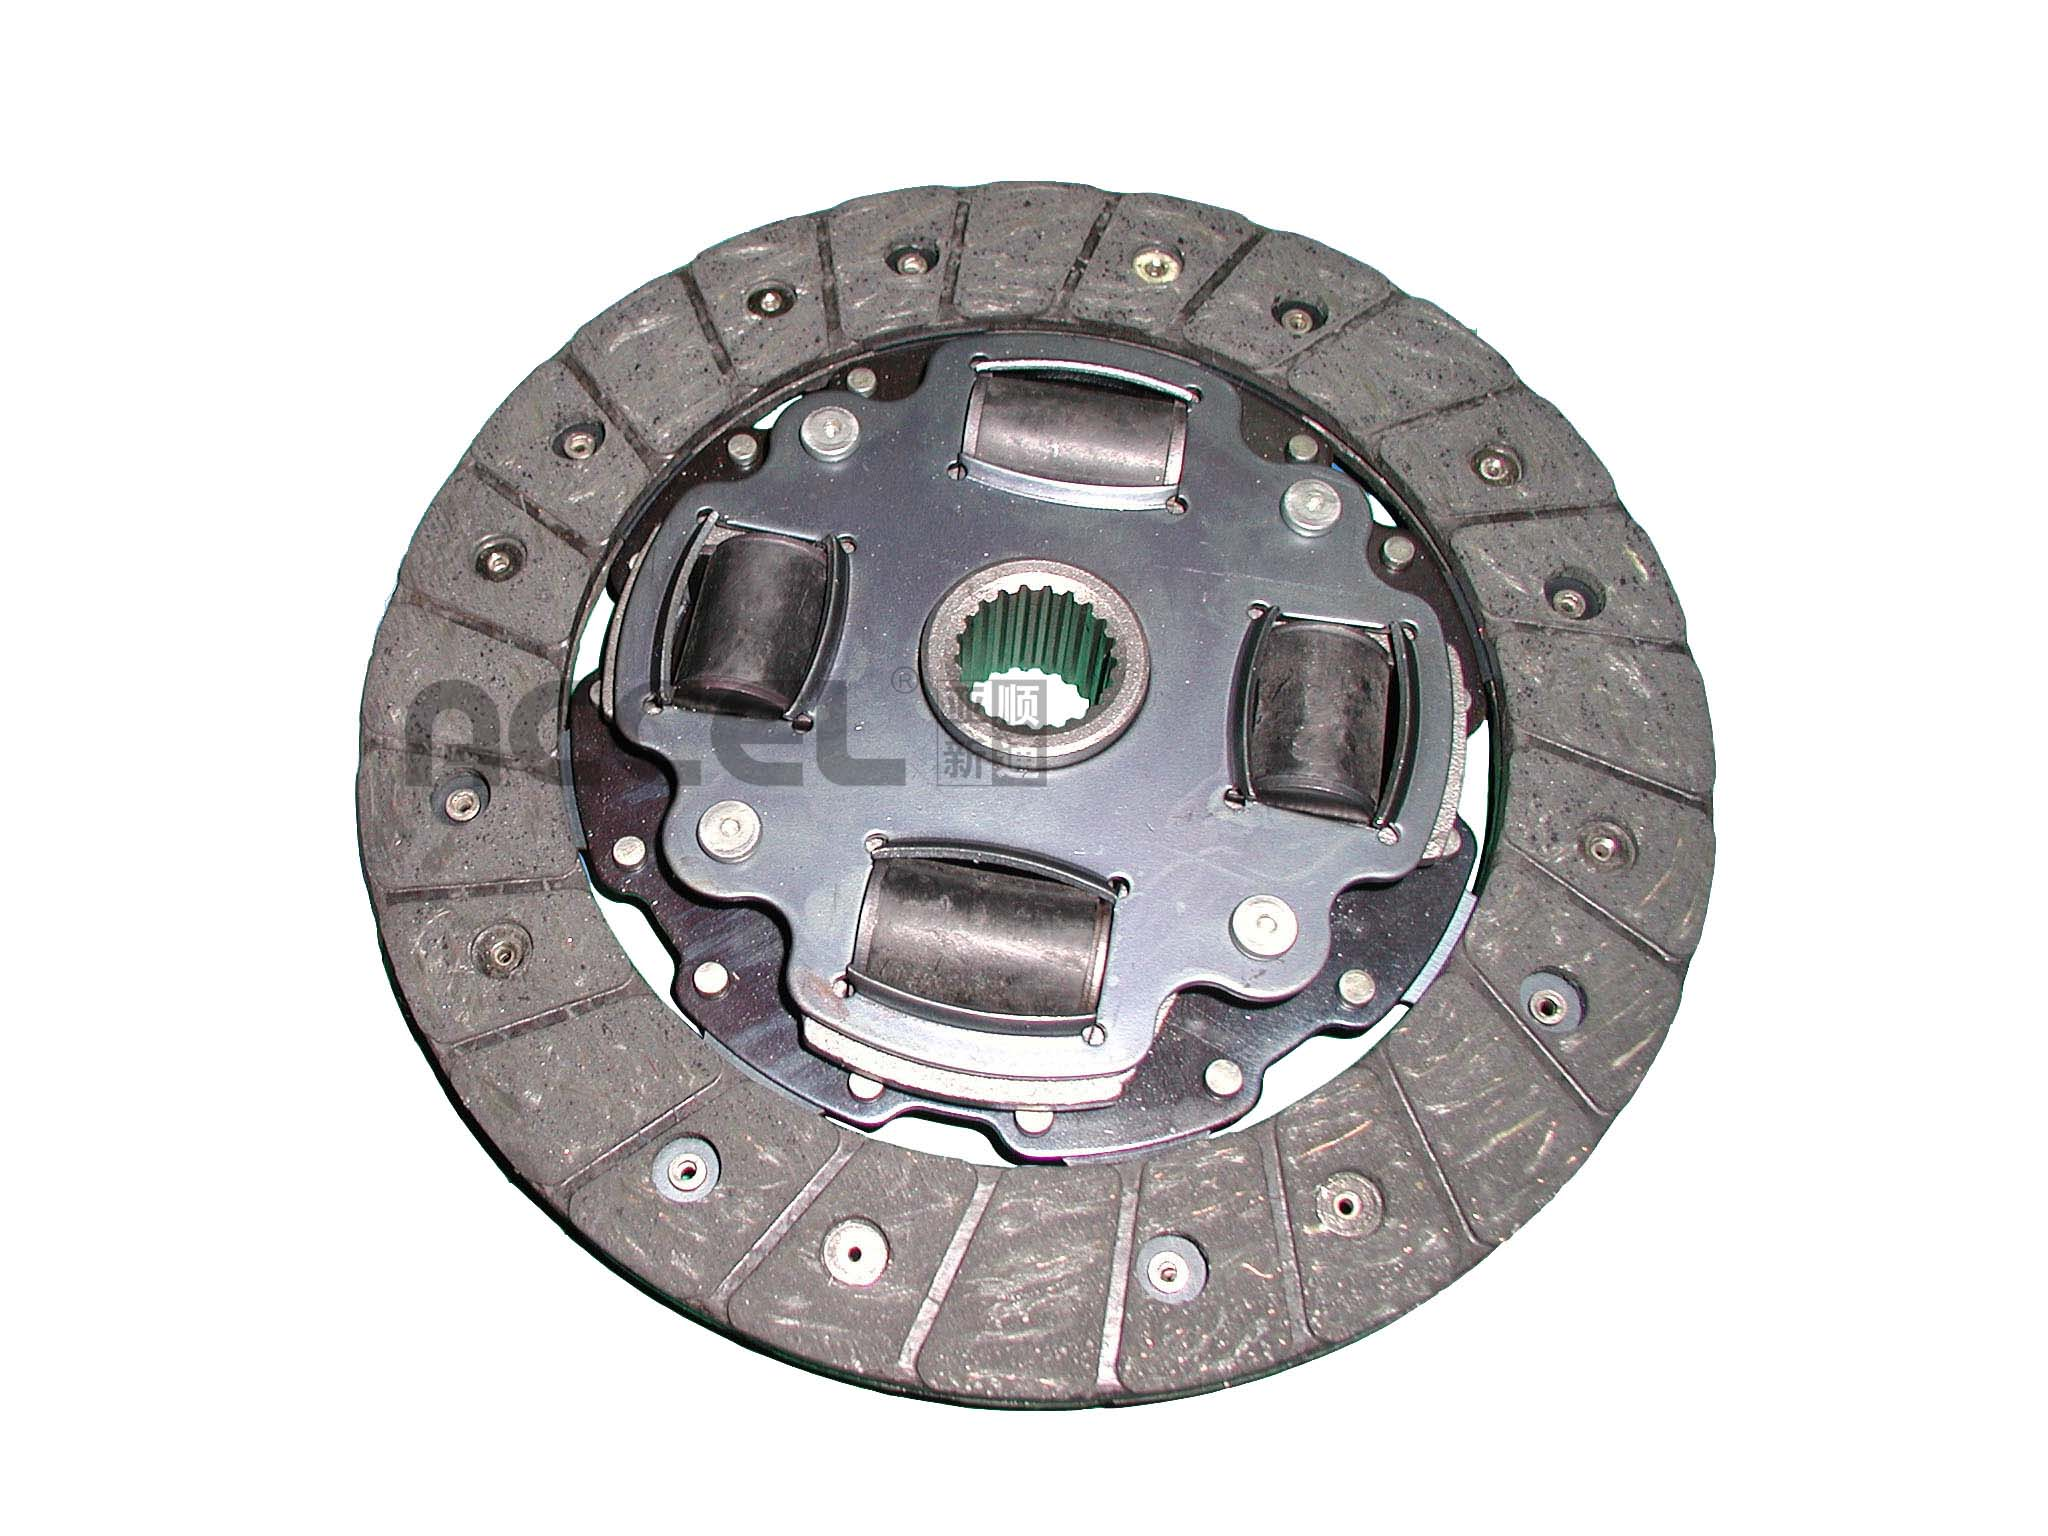 Clutch Disc/OE:22200-PM1-010/190*132*21*22/AHC-009/HONDA/CL0249/HCD006